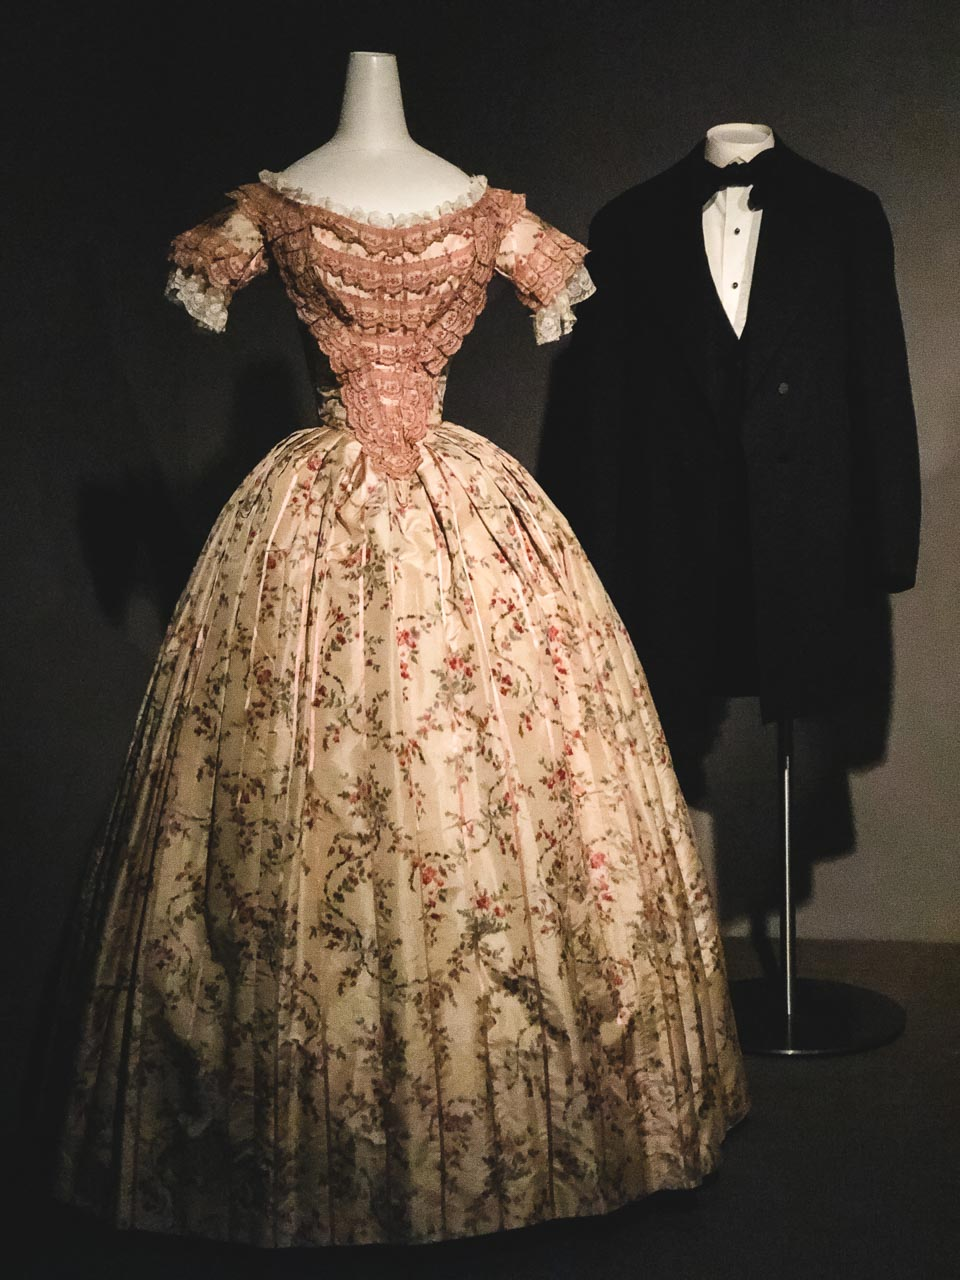 19th century garments on display at the Museum at the Fashion Institute of Technology in New York